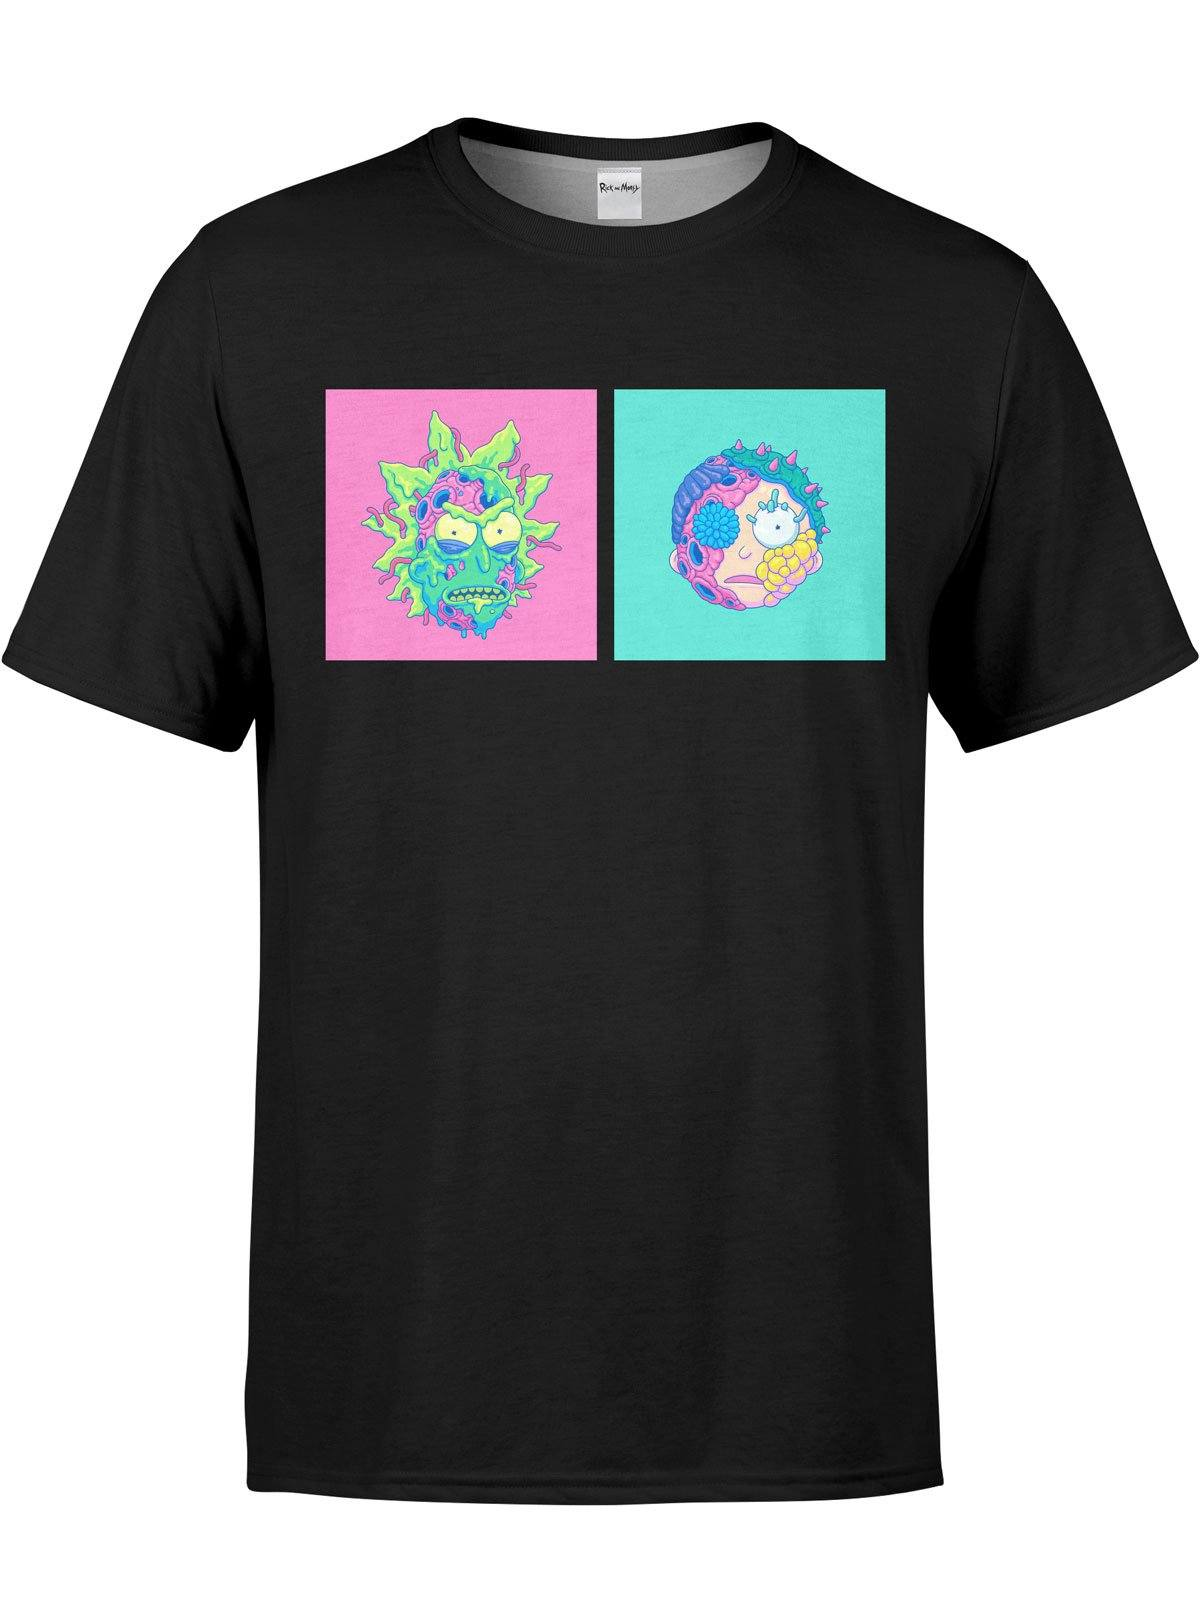 Infected Rick and Morty Unisex Crew T-Shirts Electro Threads XS Black